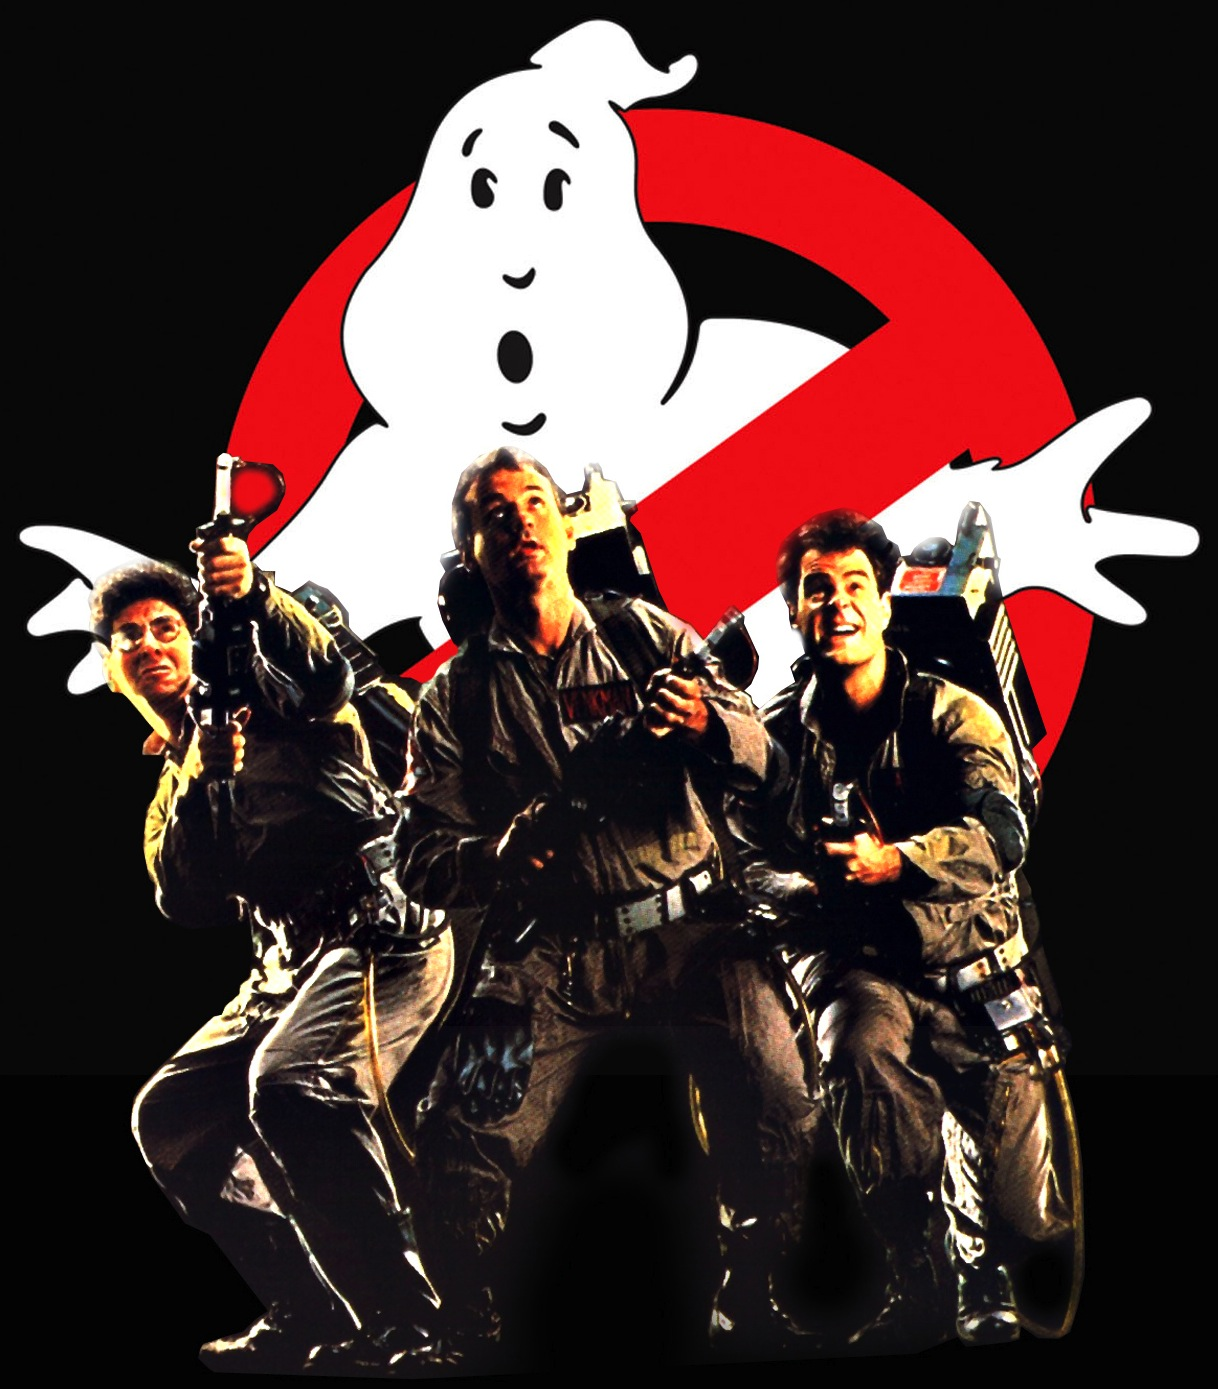 http://imguol.com/blogs/88/files/2014/03/2367703-a2600_ghostbusters.jpg